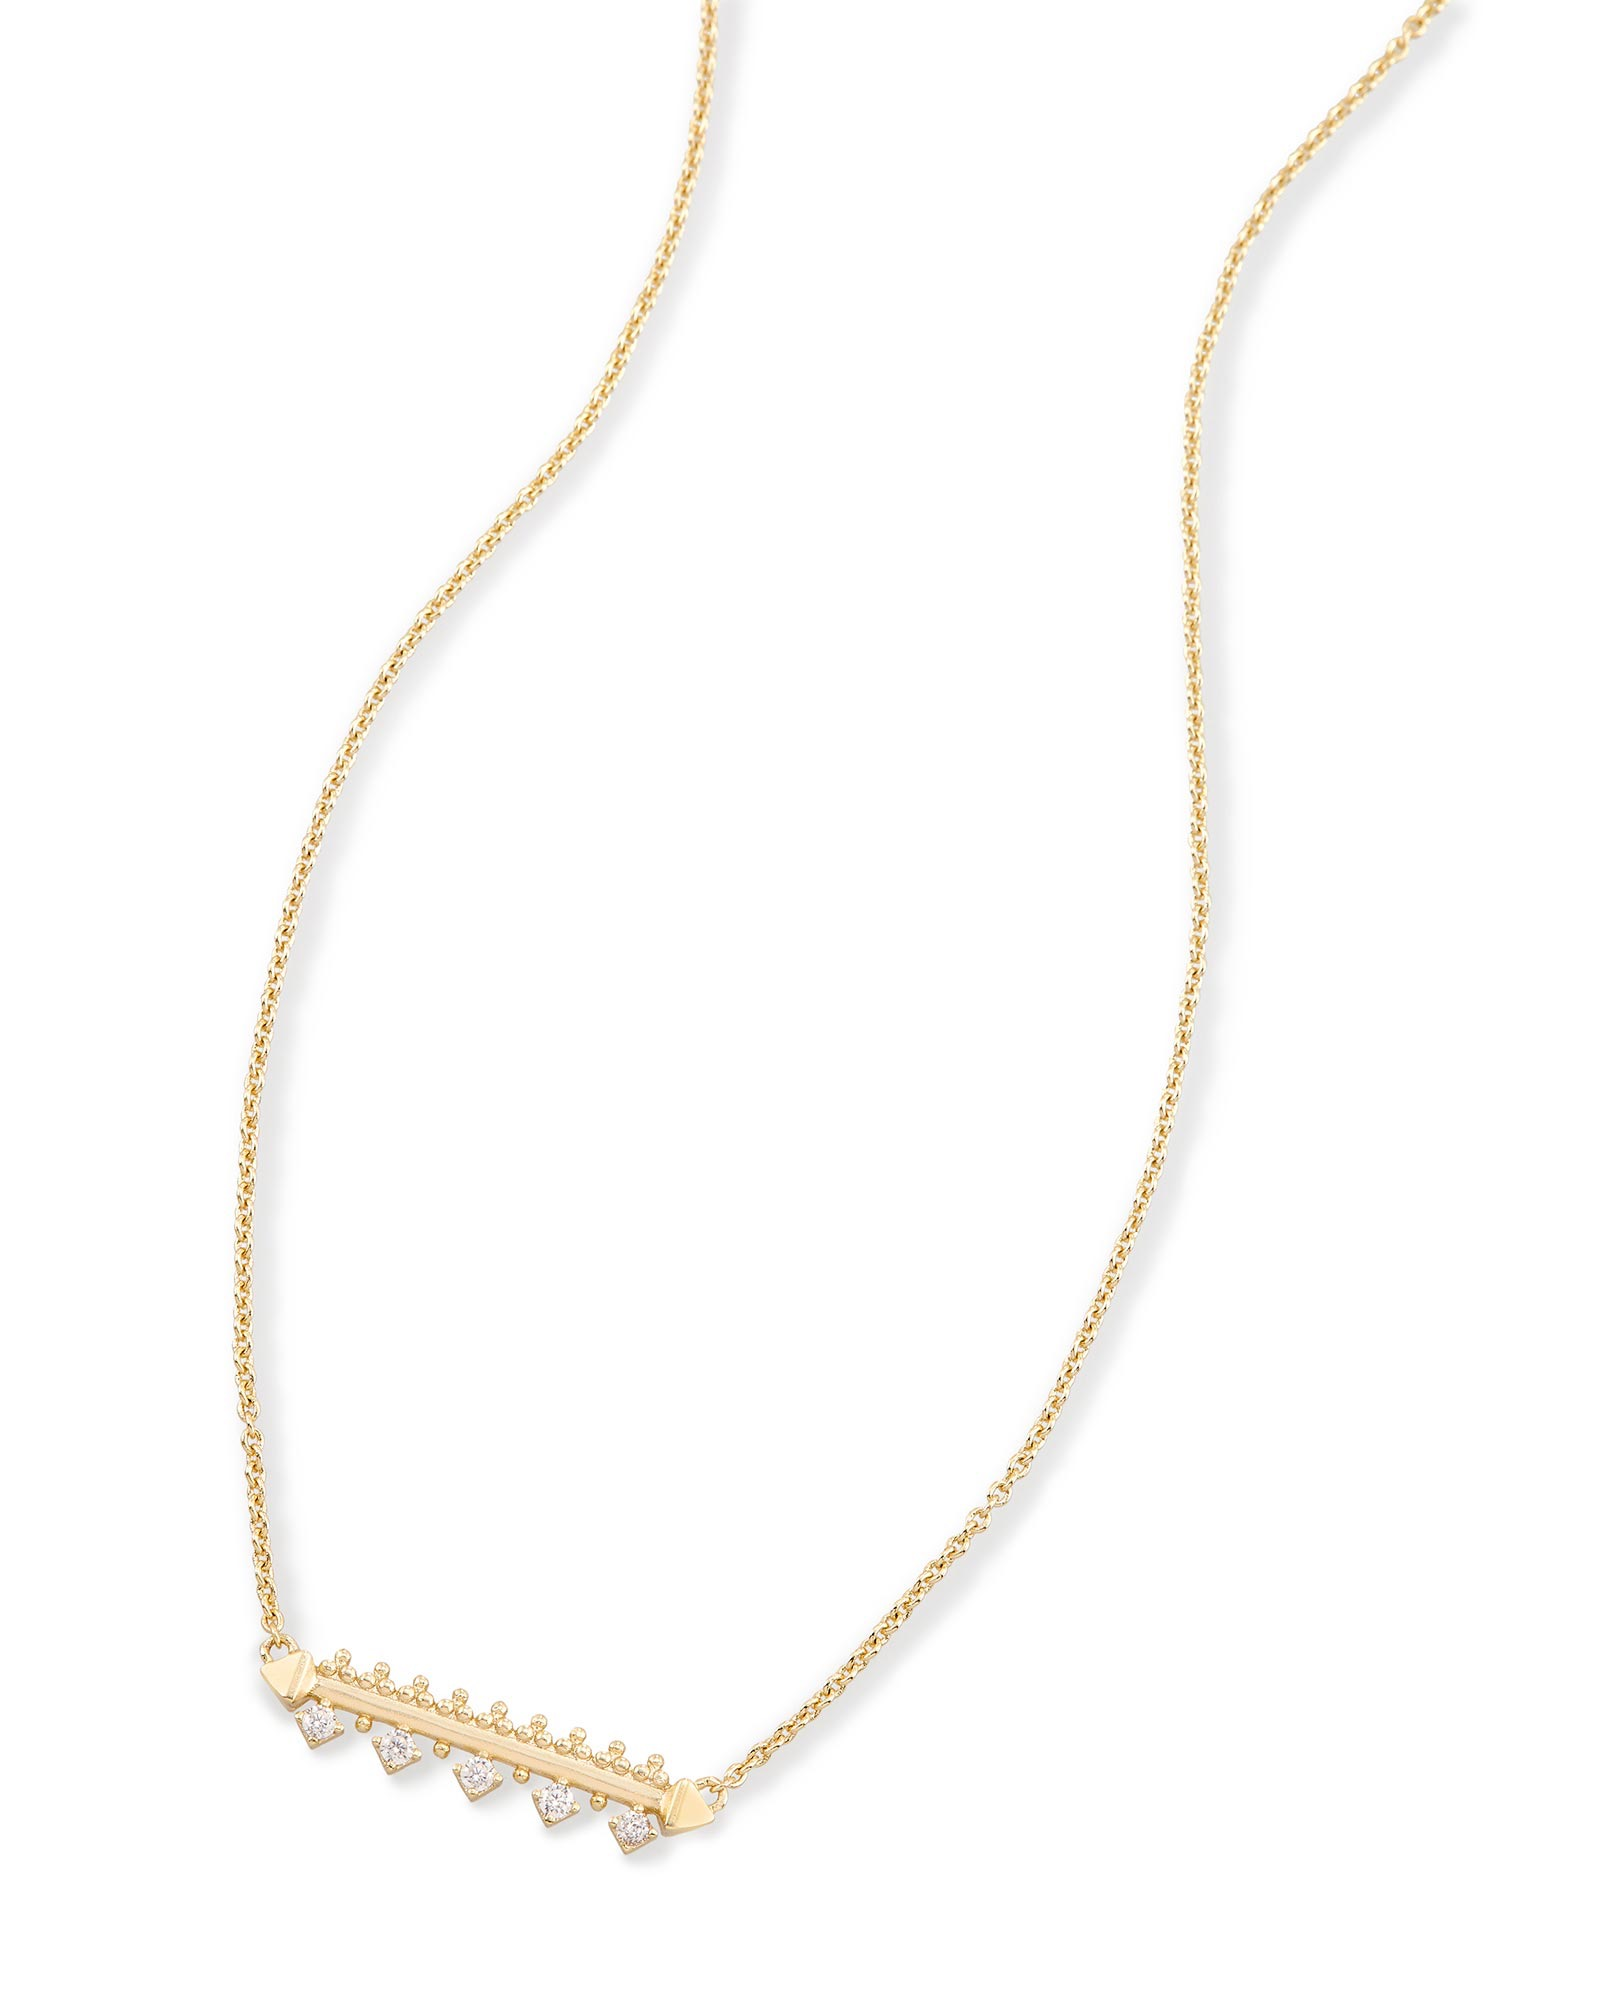 Anissa Bar Pendant Necklace in Gold